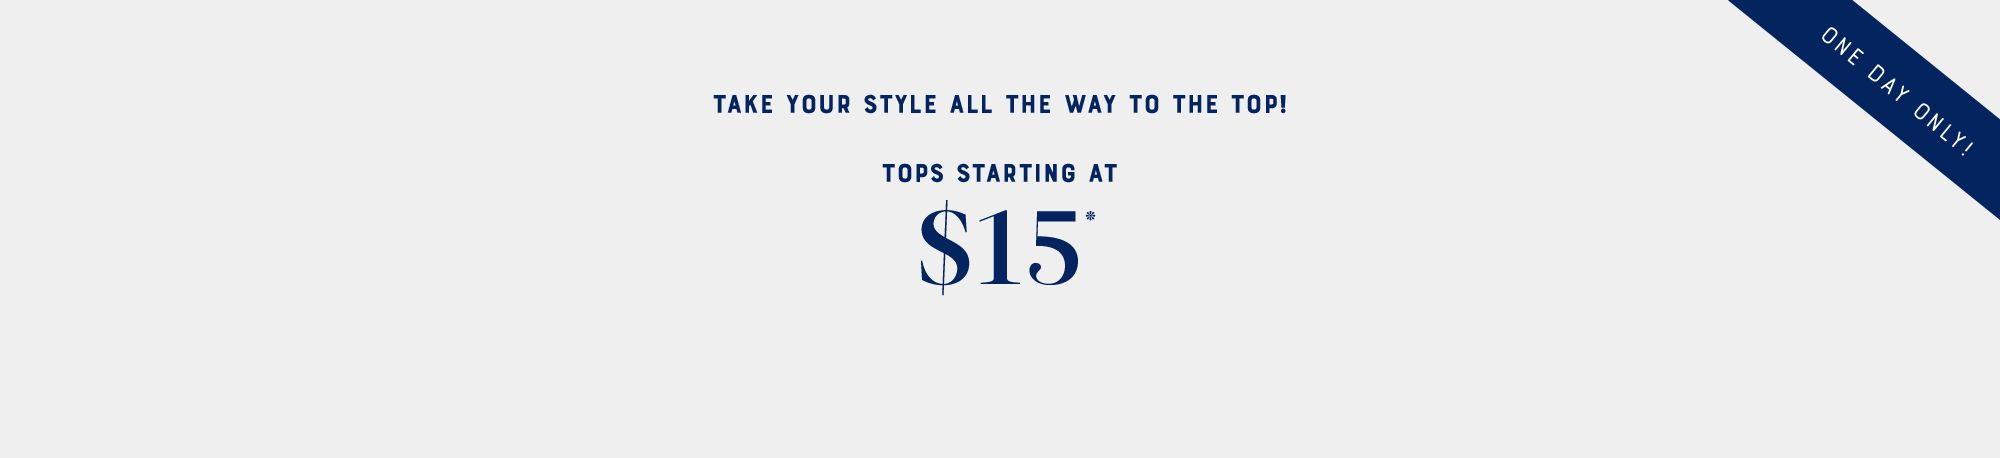 Lucky Day - Tops at $15